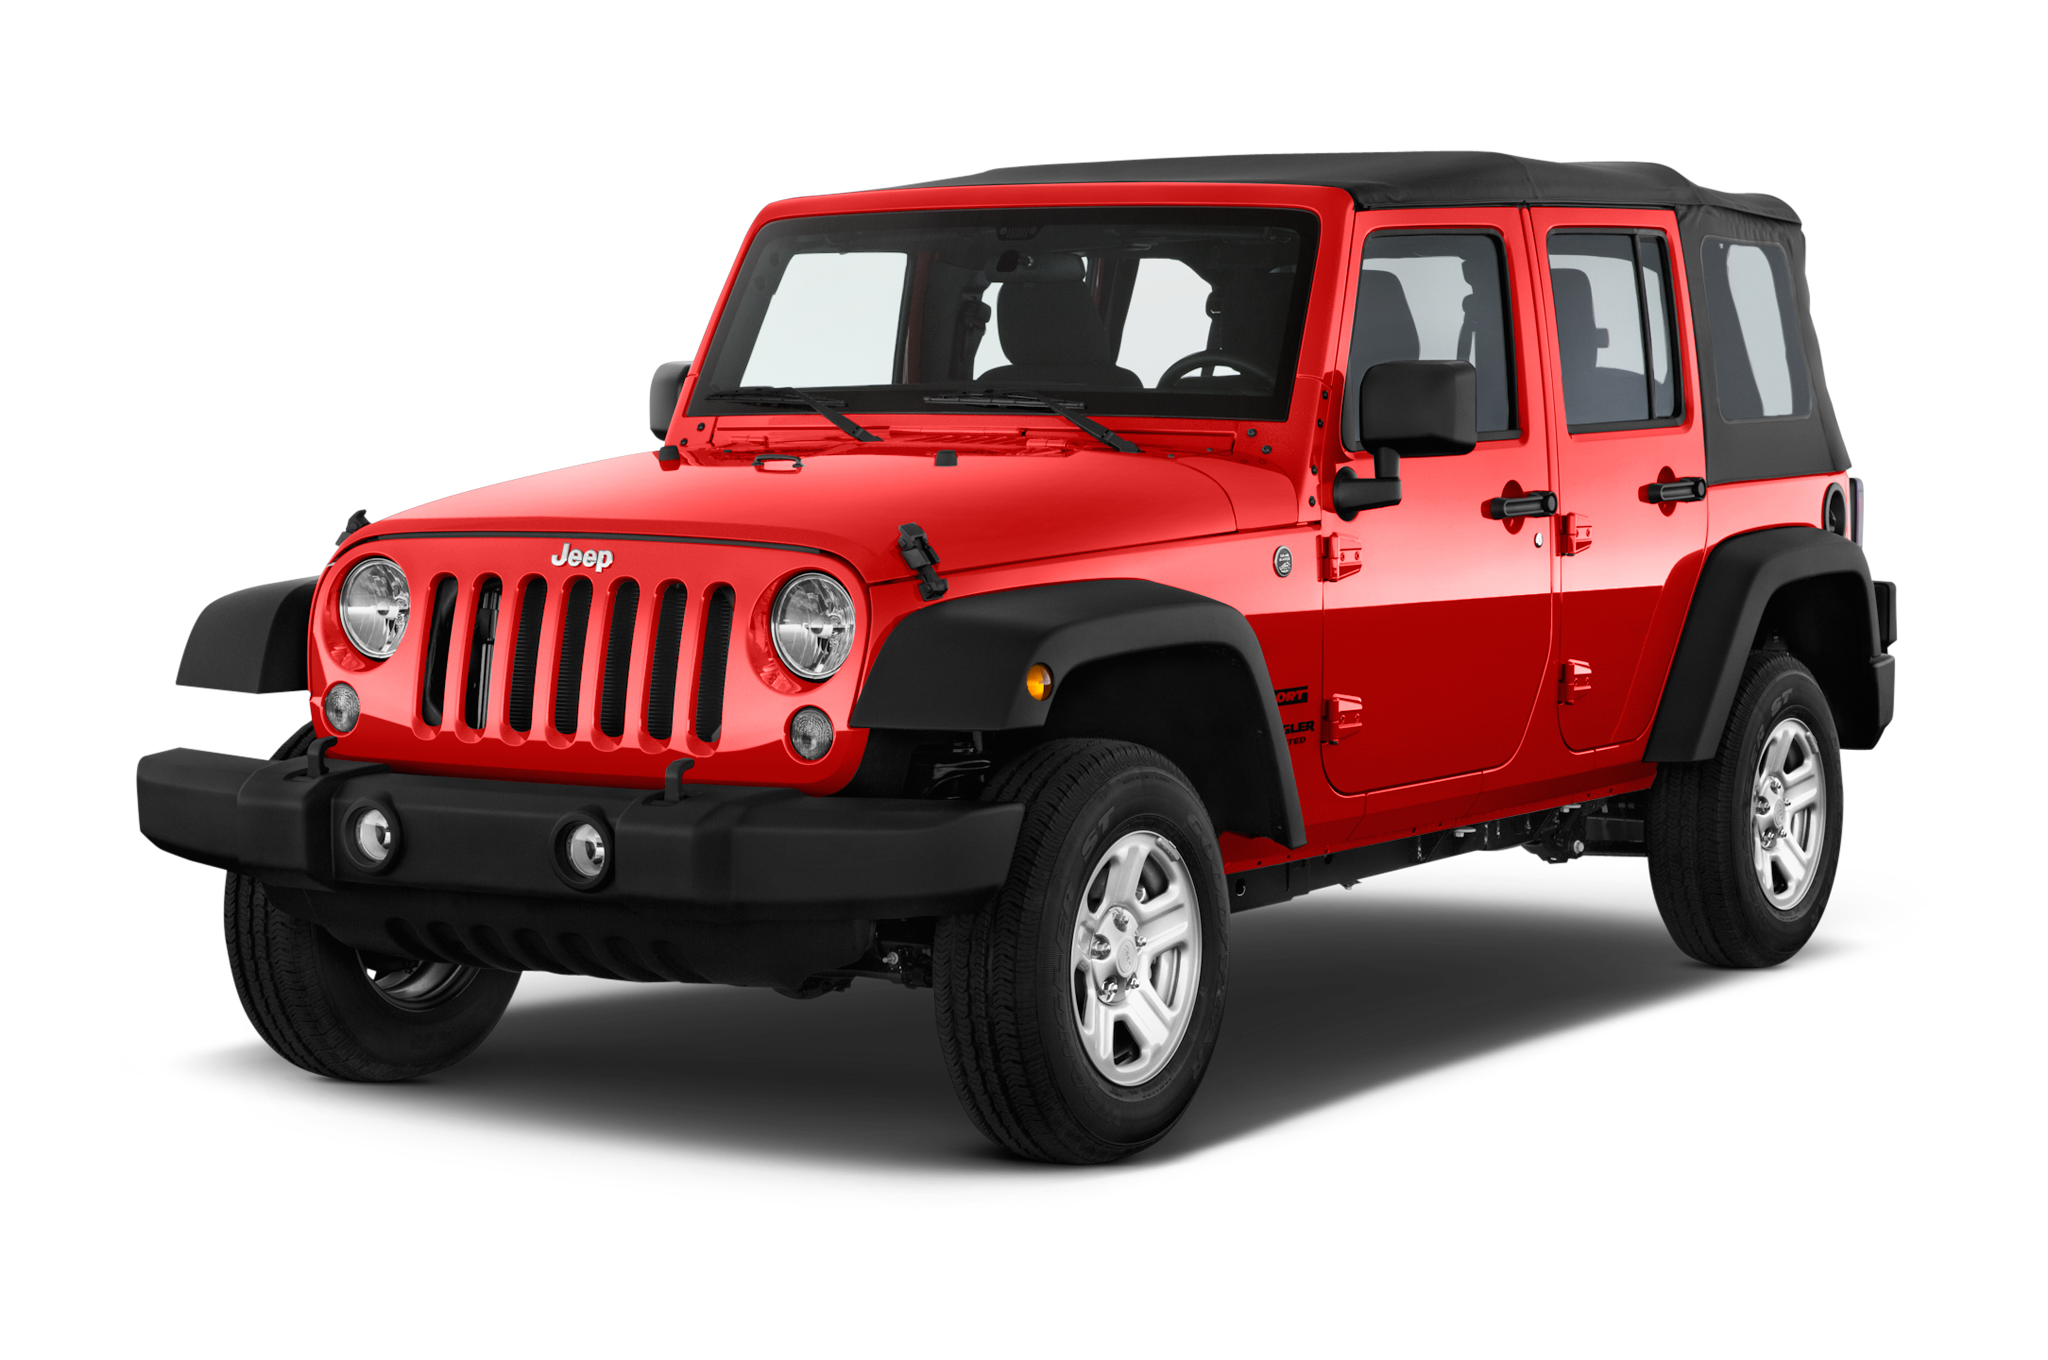 2016 jeep wrangler png. Unlimited sport suv